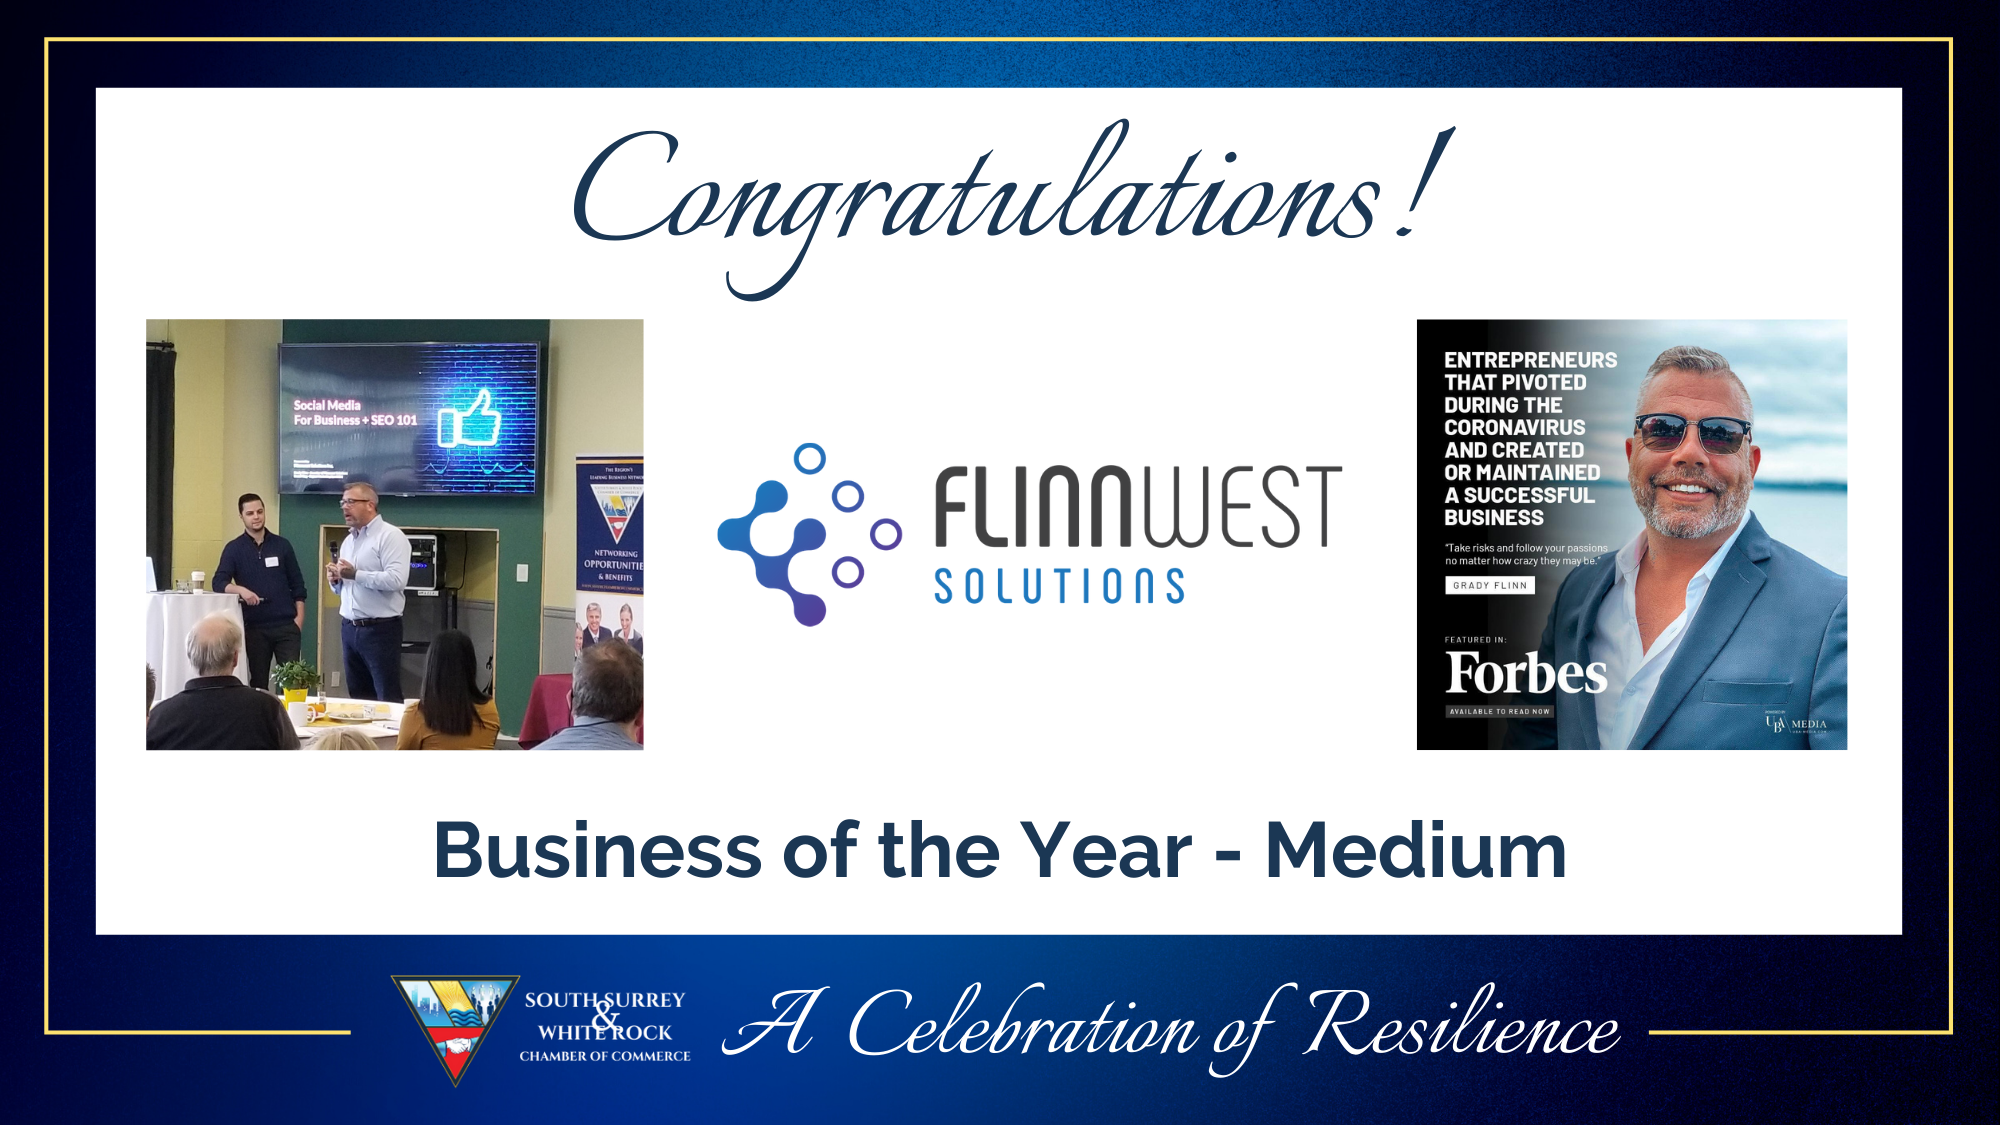 Congratulations-Business-of-the-Year-Medium.png